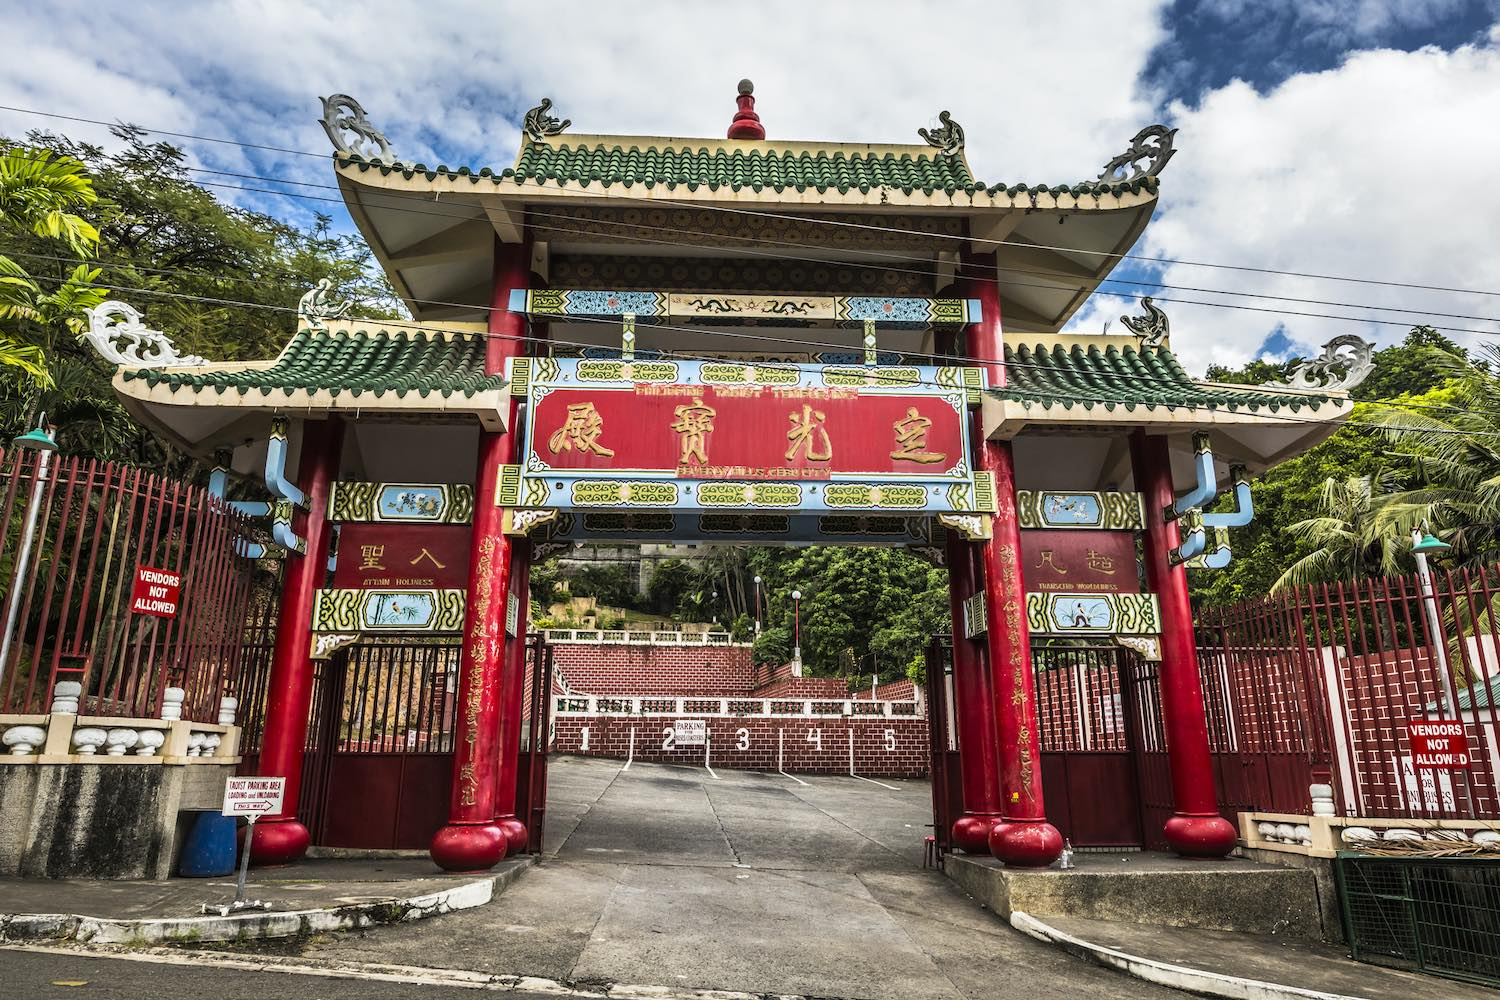 Pagoda and dragon sculpture of the Taoist Temple in Cebu, Philippines.